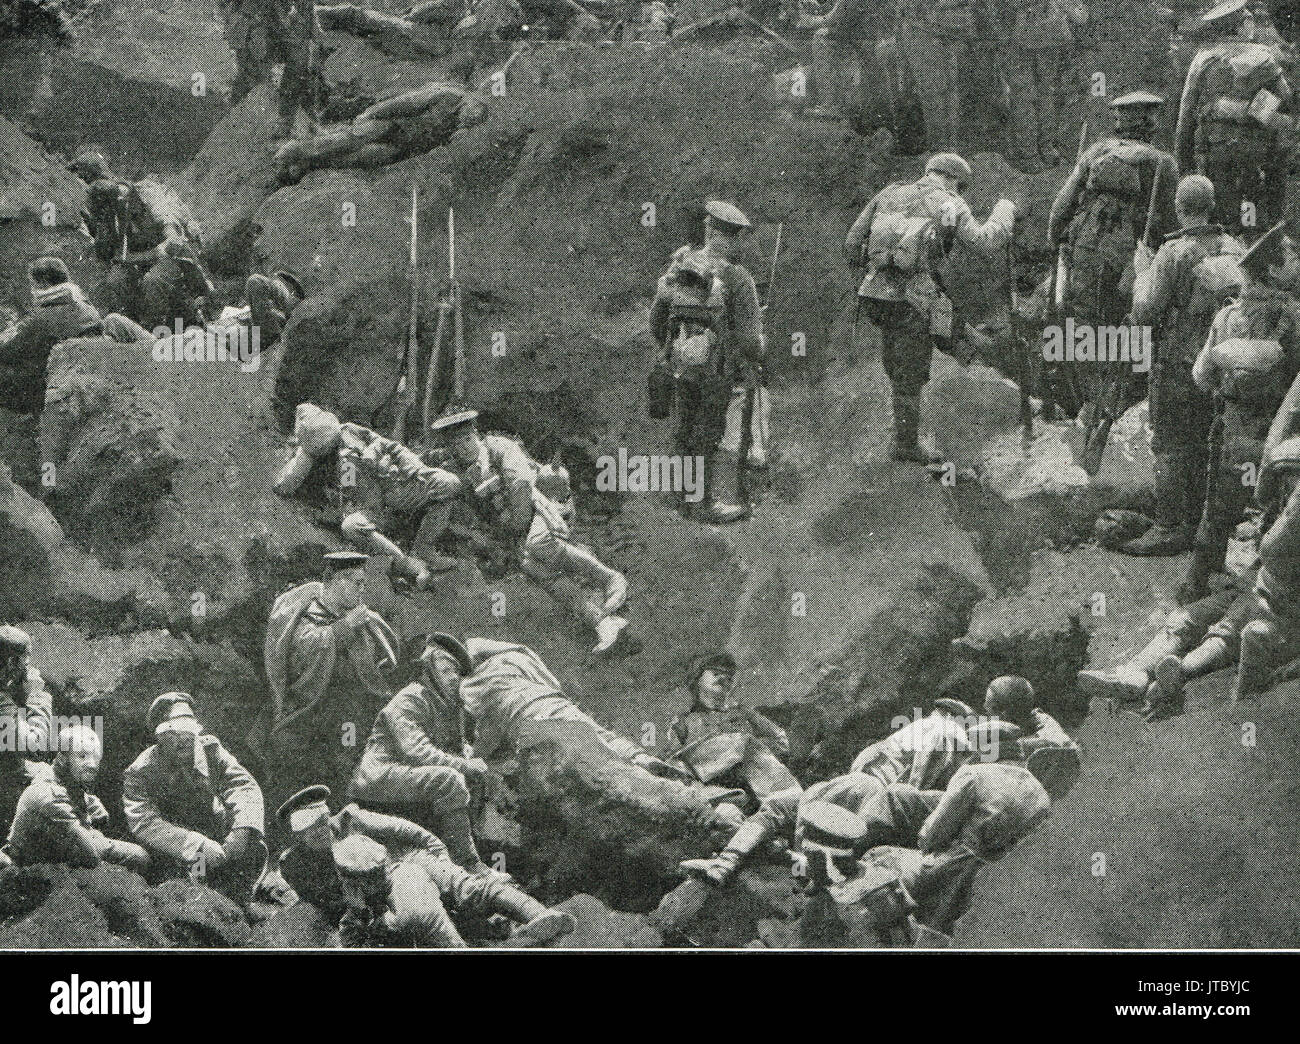 Aftermath of mine explosion in German trench - Stock Image